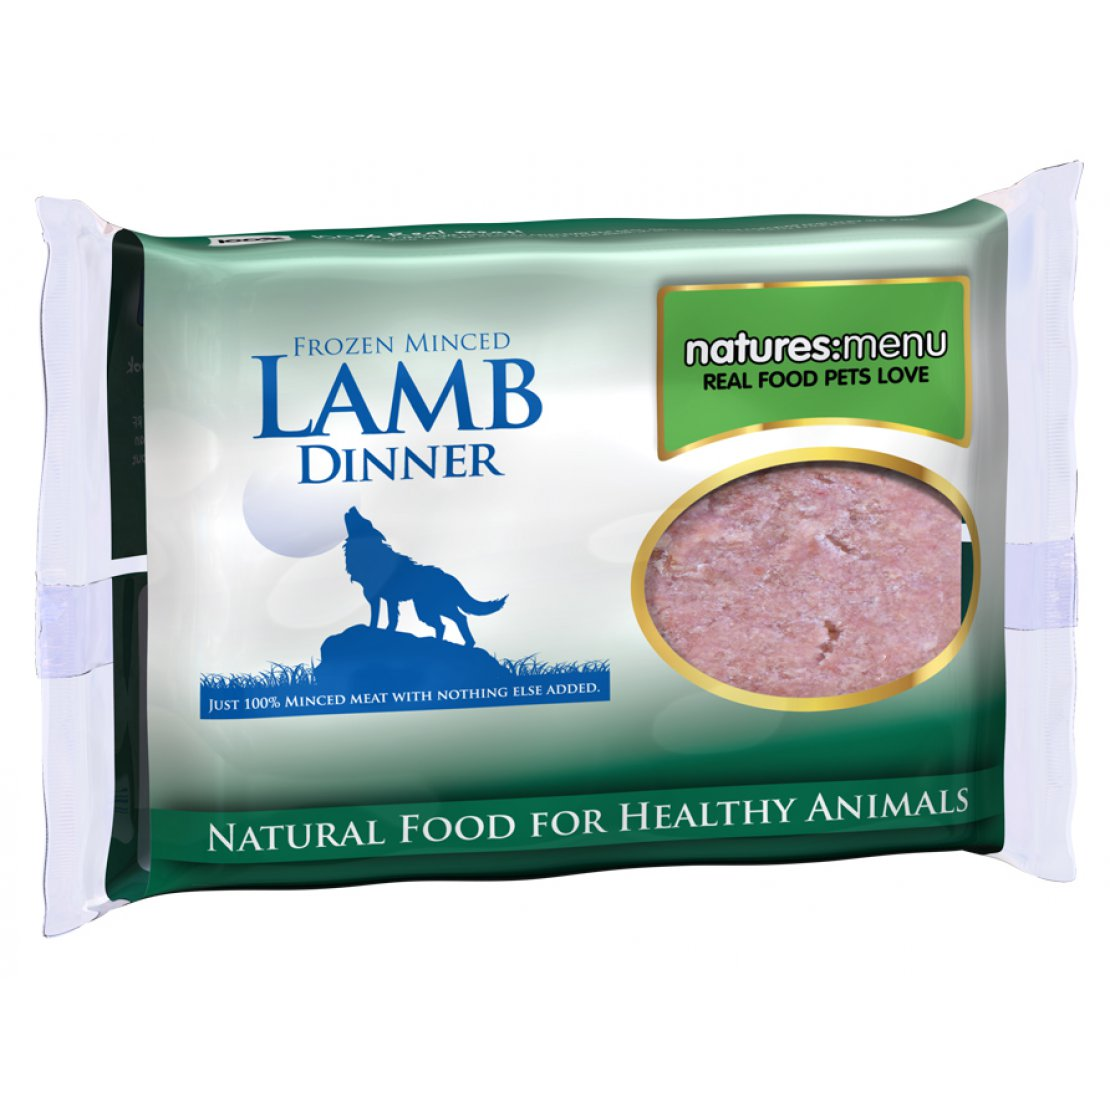 ONLY AVAILABLE FOR LOCAL DELIVERY. Natures Menu Frozen Dog Food. Lamb Mince